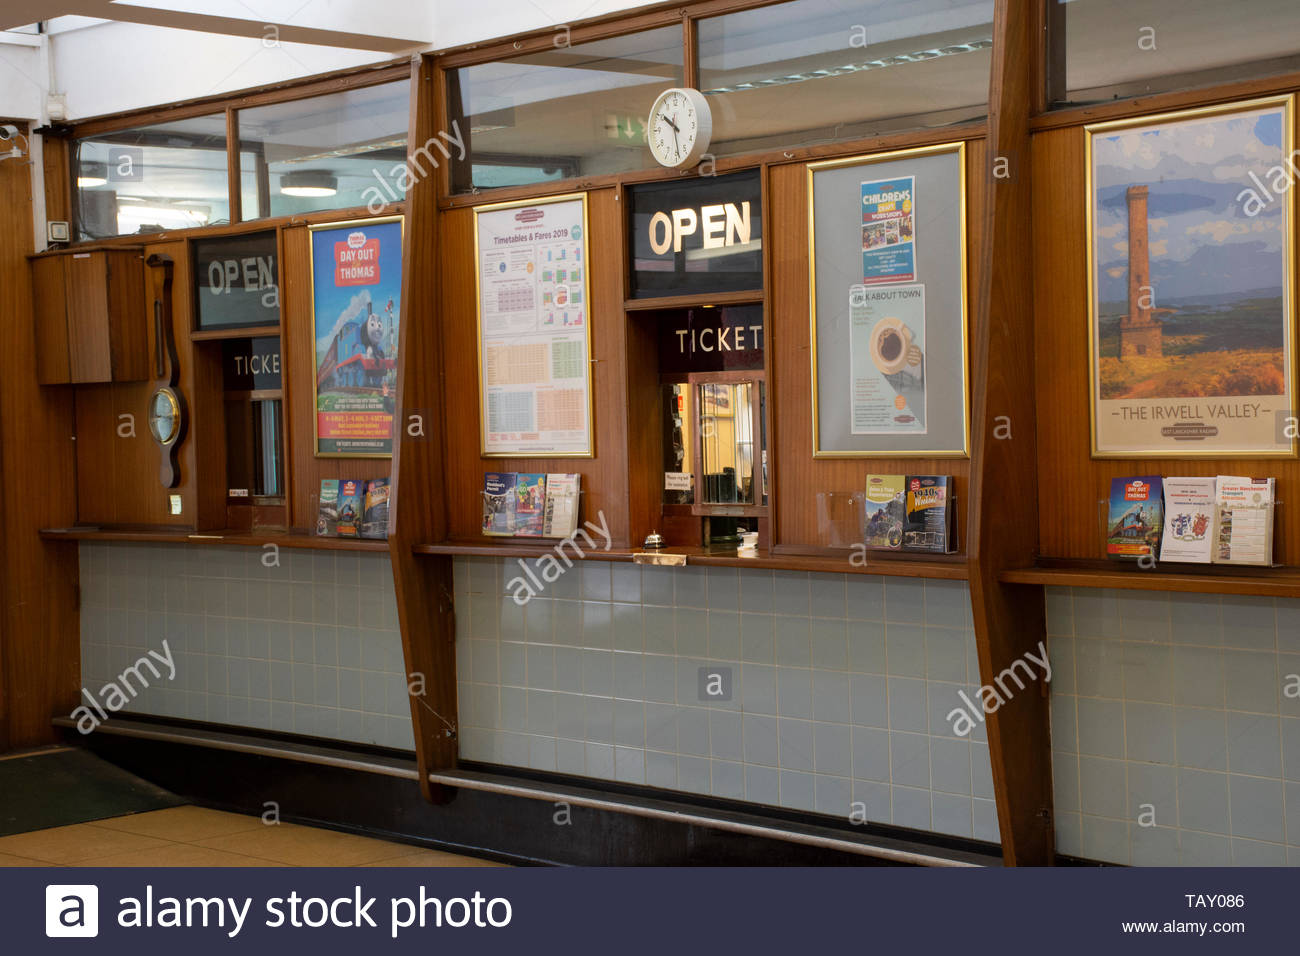 The wooden preserved Ticket Counter at the East Lancs Railway, Bury, Lancashire, UK, featured in an episode of 'The Bay' crime drama. - Stock Image